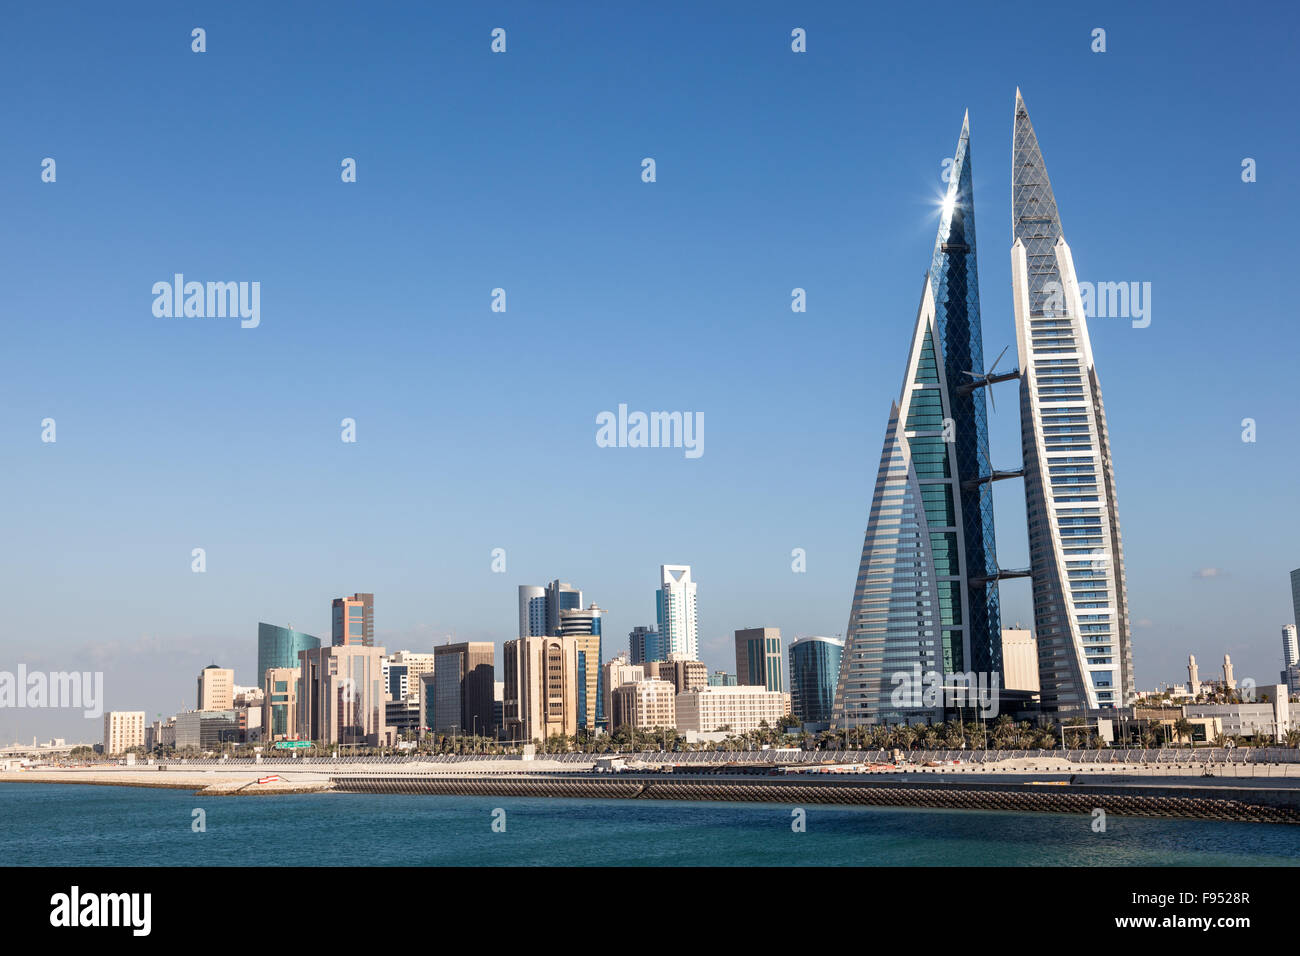 Bahrain World Trade Center - Stock Image